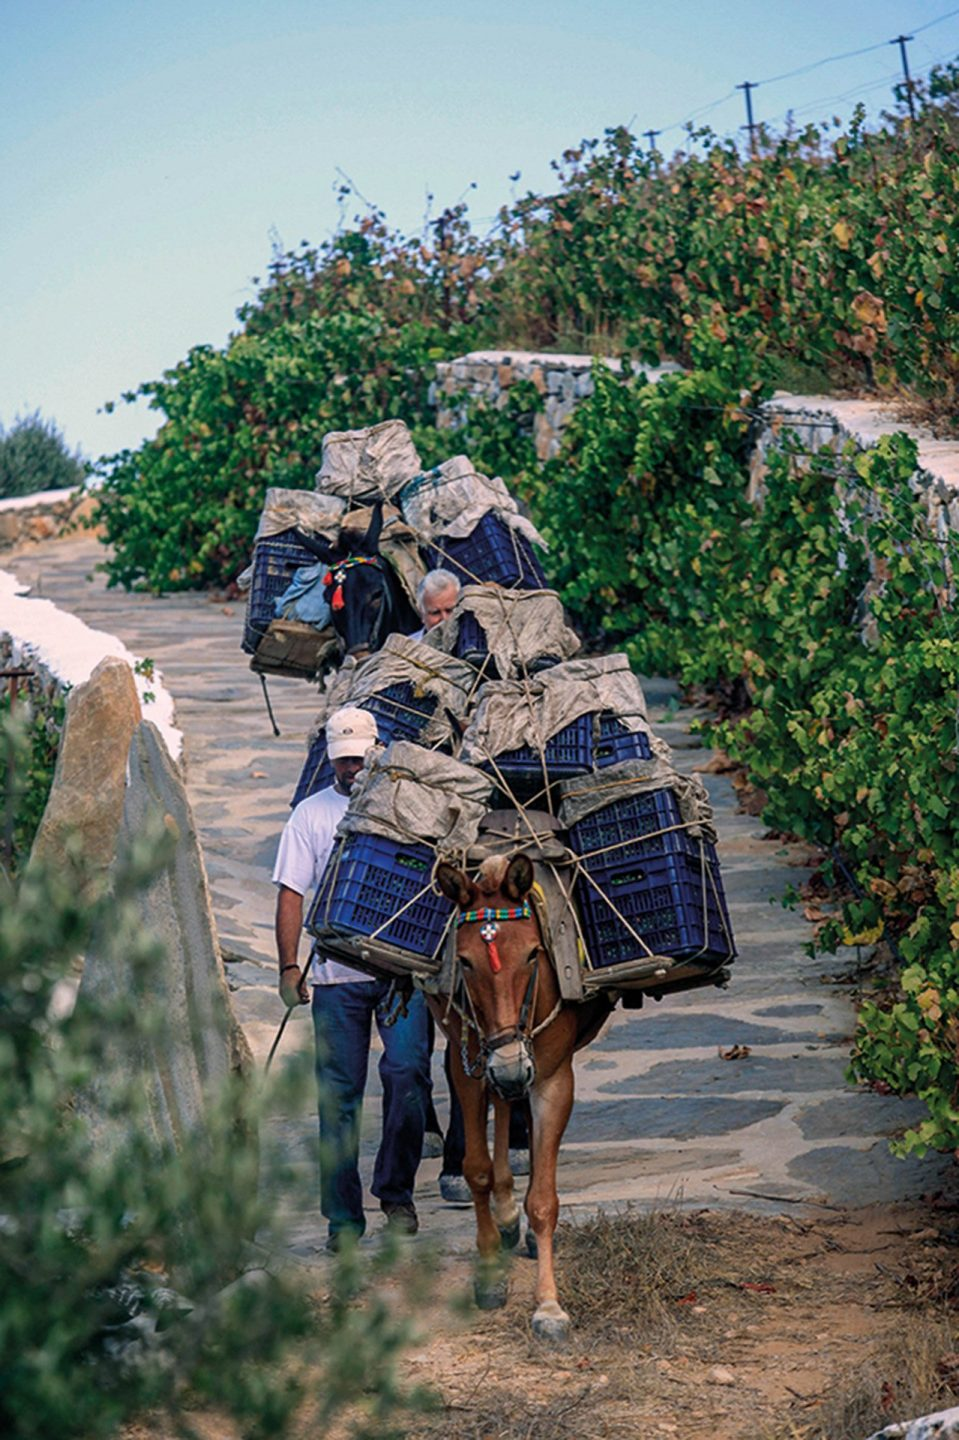 Carrying the grapes with donkeys.